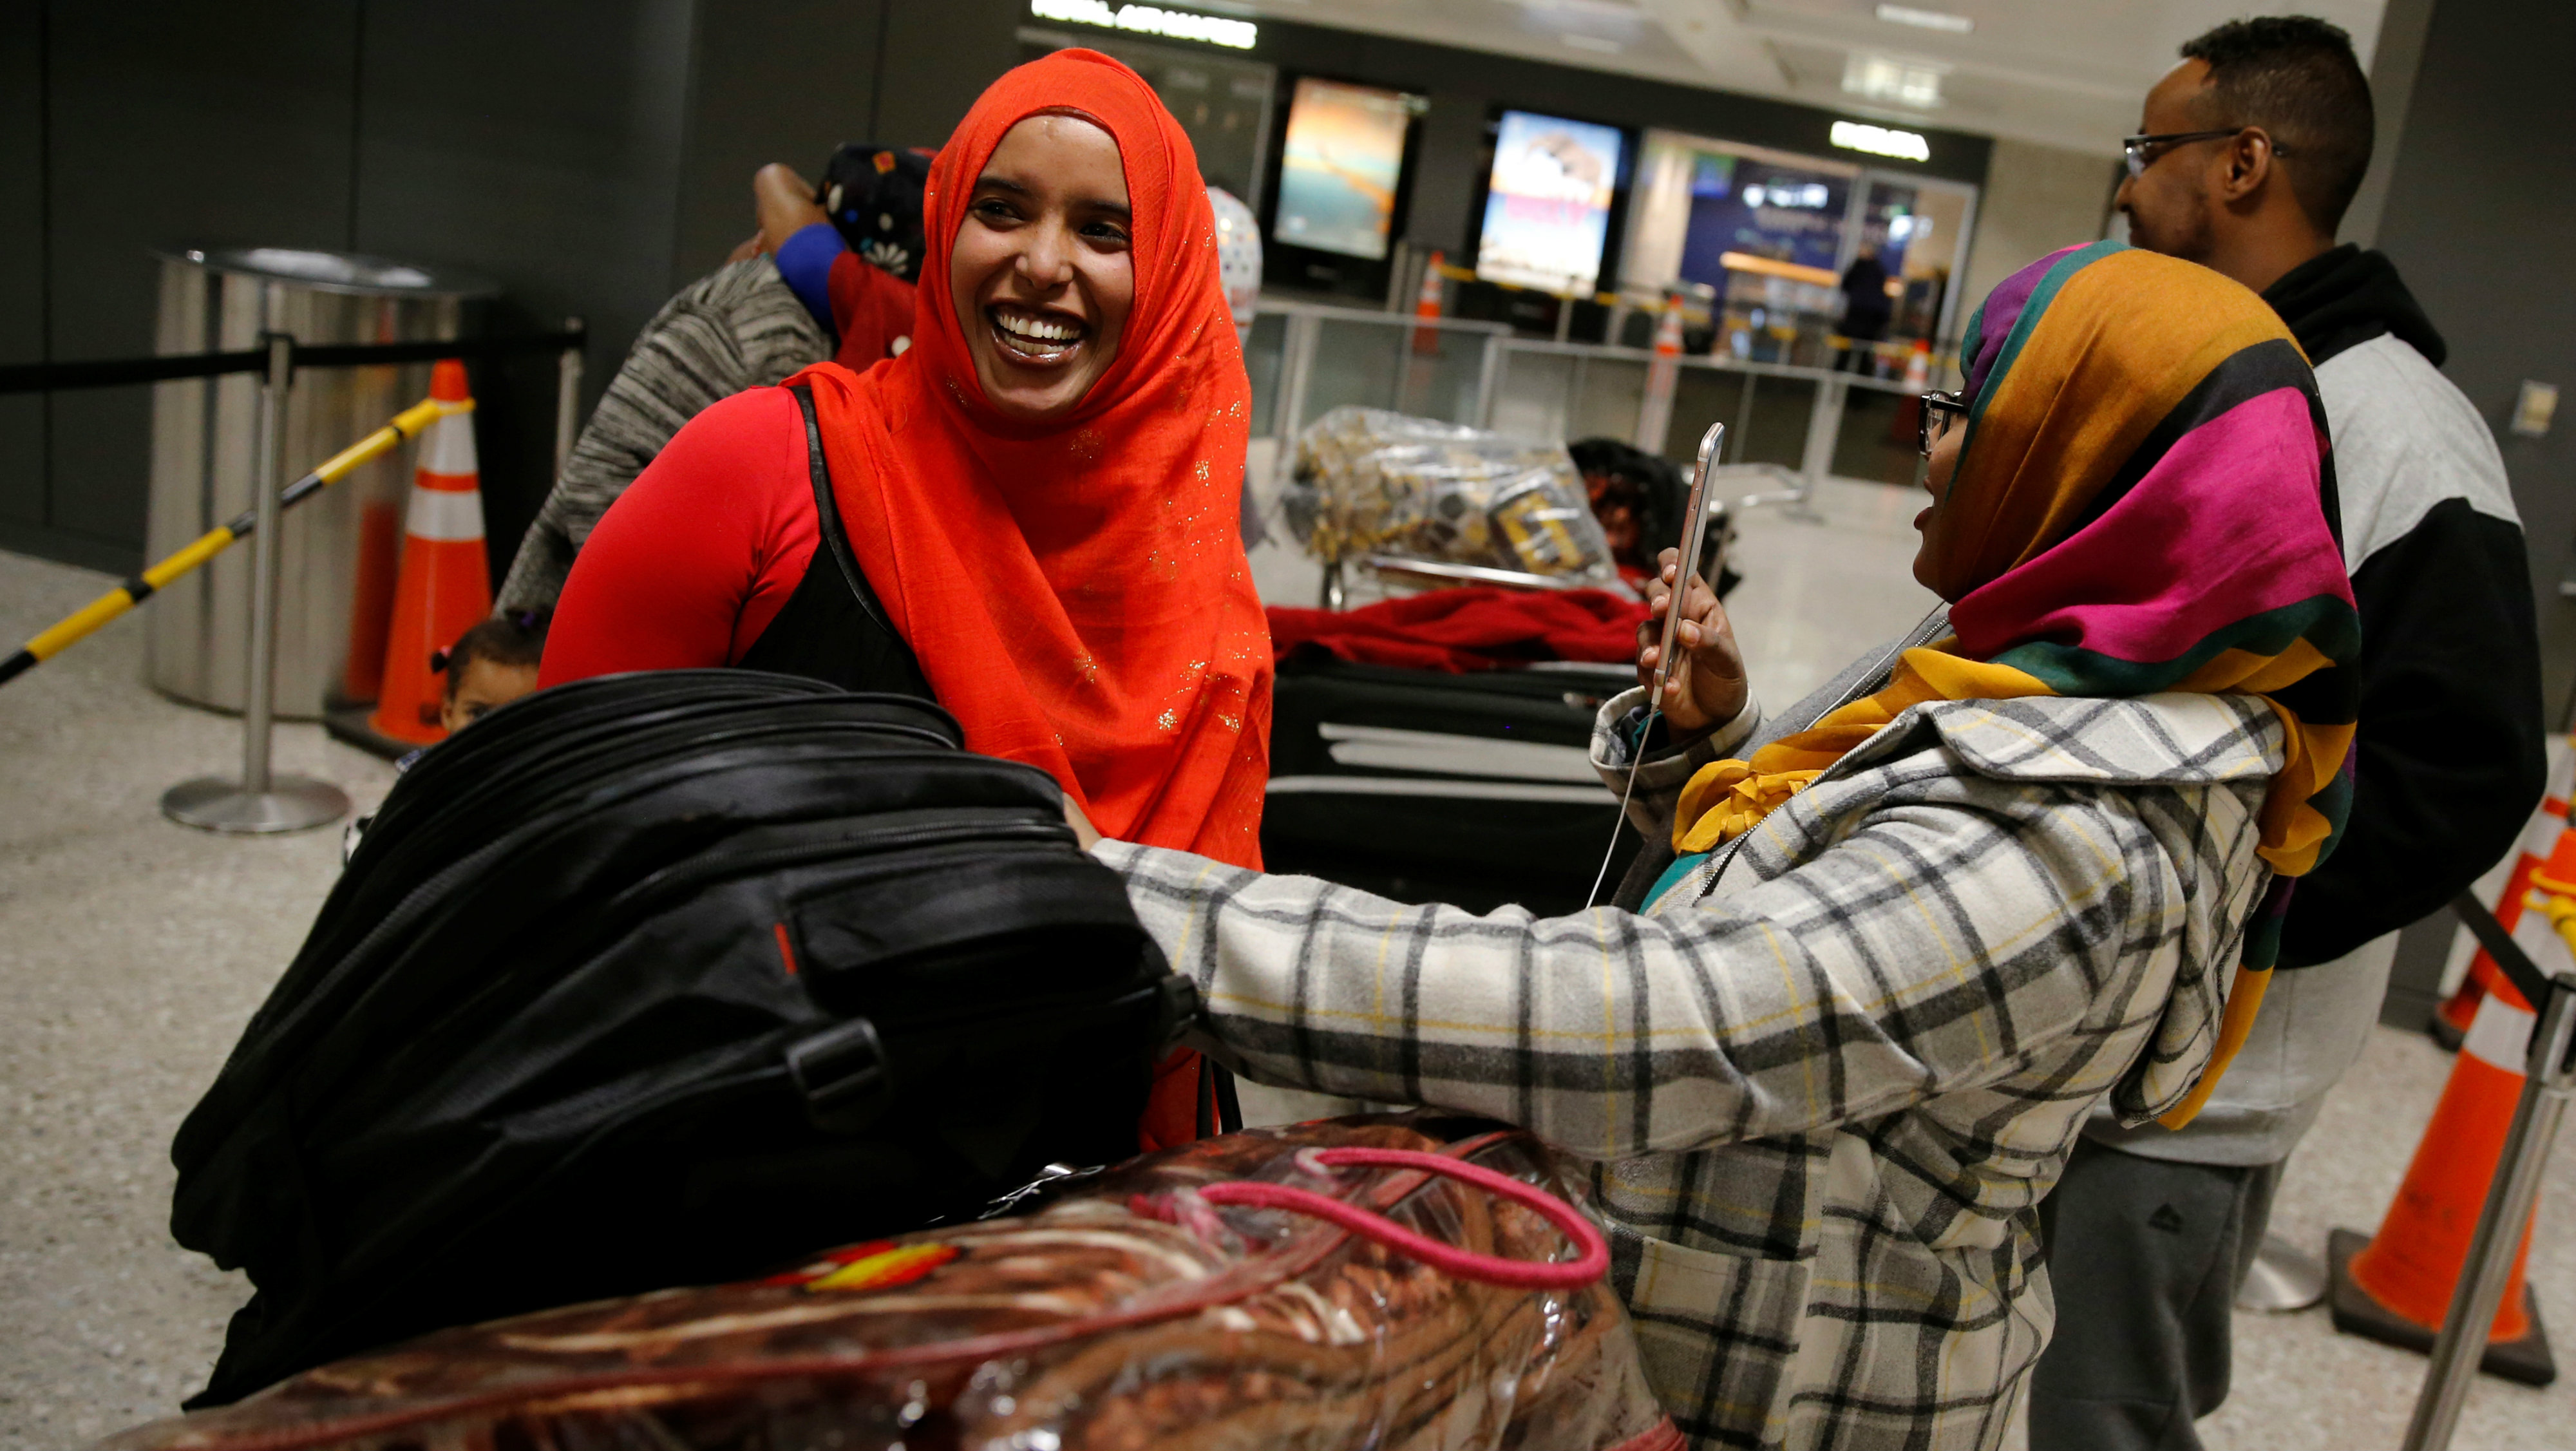 Najmia Abdishakur (L), a Somali national who was delayed entry to the U.S. because of the recent travel ban, smiles as her family welcomes her at Washington Dulles International Airport in Chantilly, Virginia, U.S. February 6, 2017.